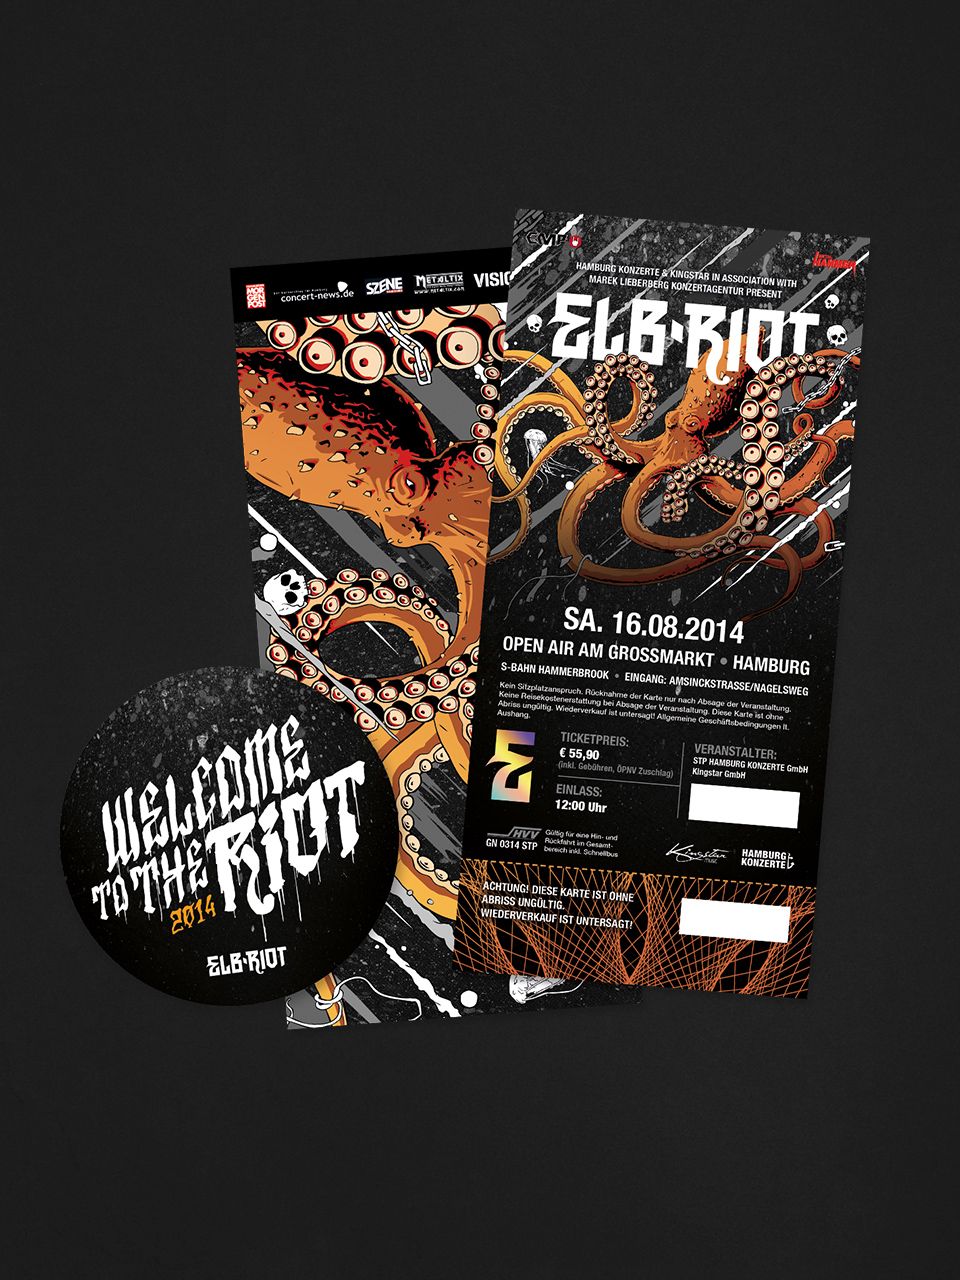 Elbriot_2014_960x1280_Tickets